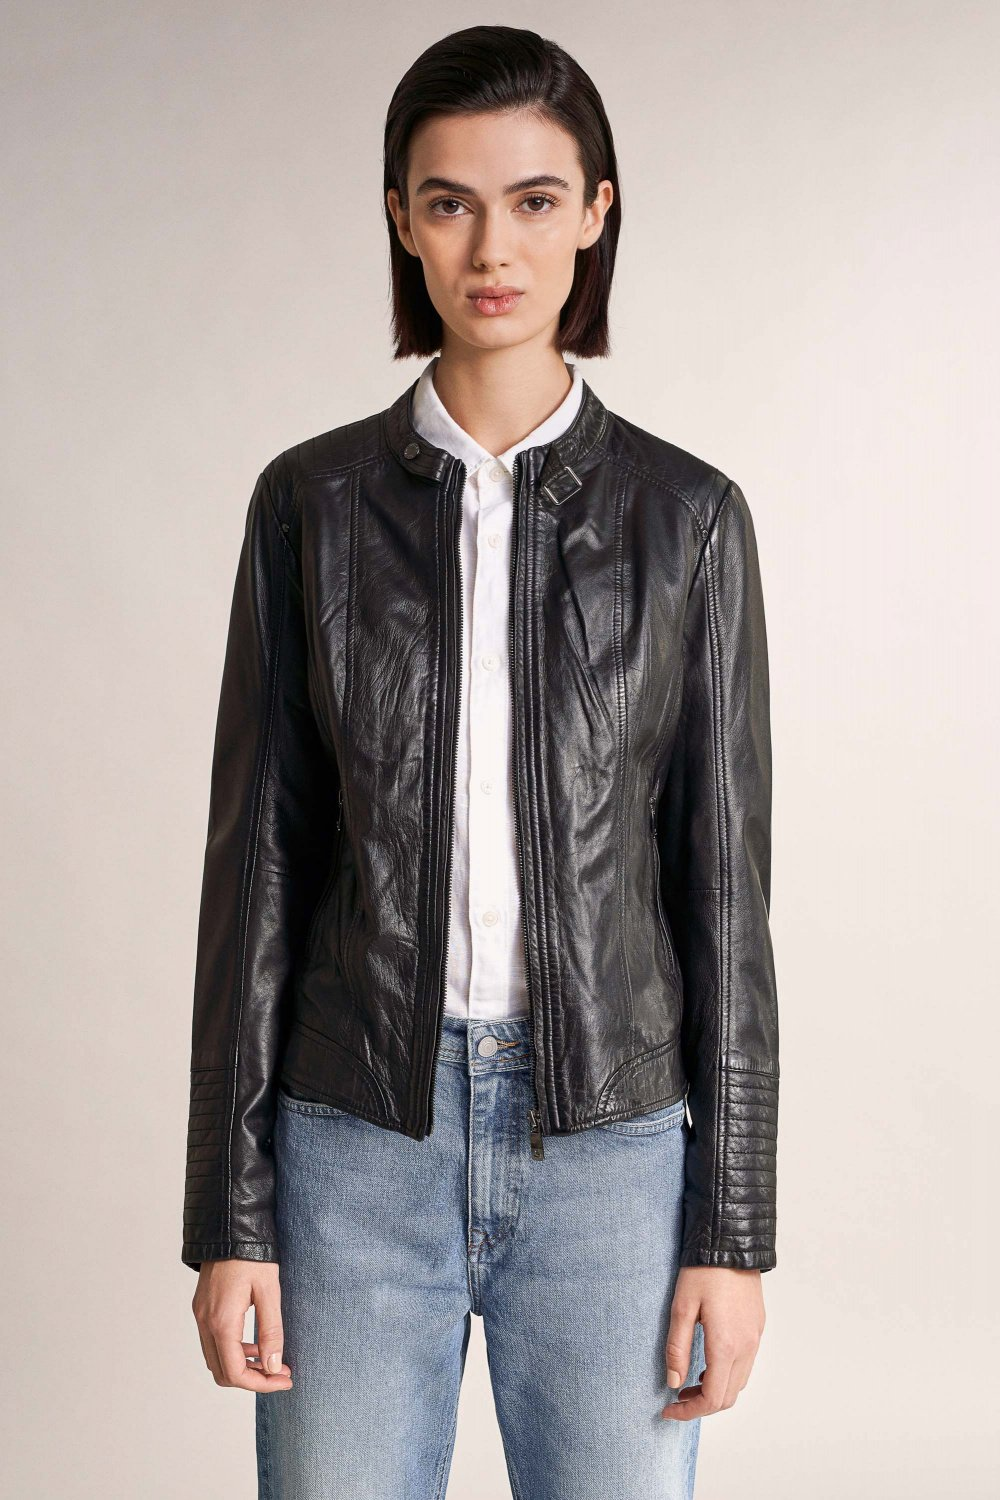 Leather jacket - Salsa